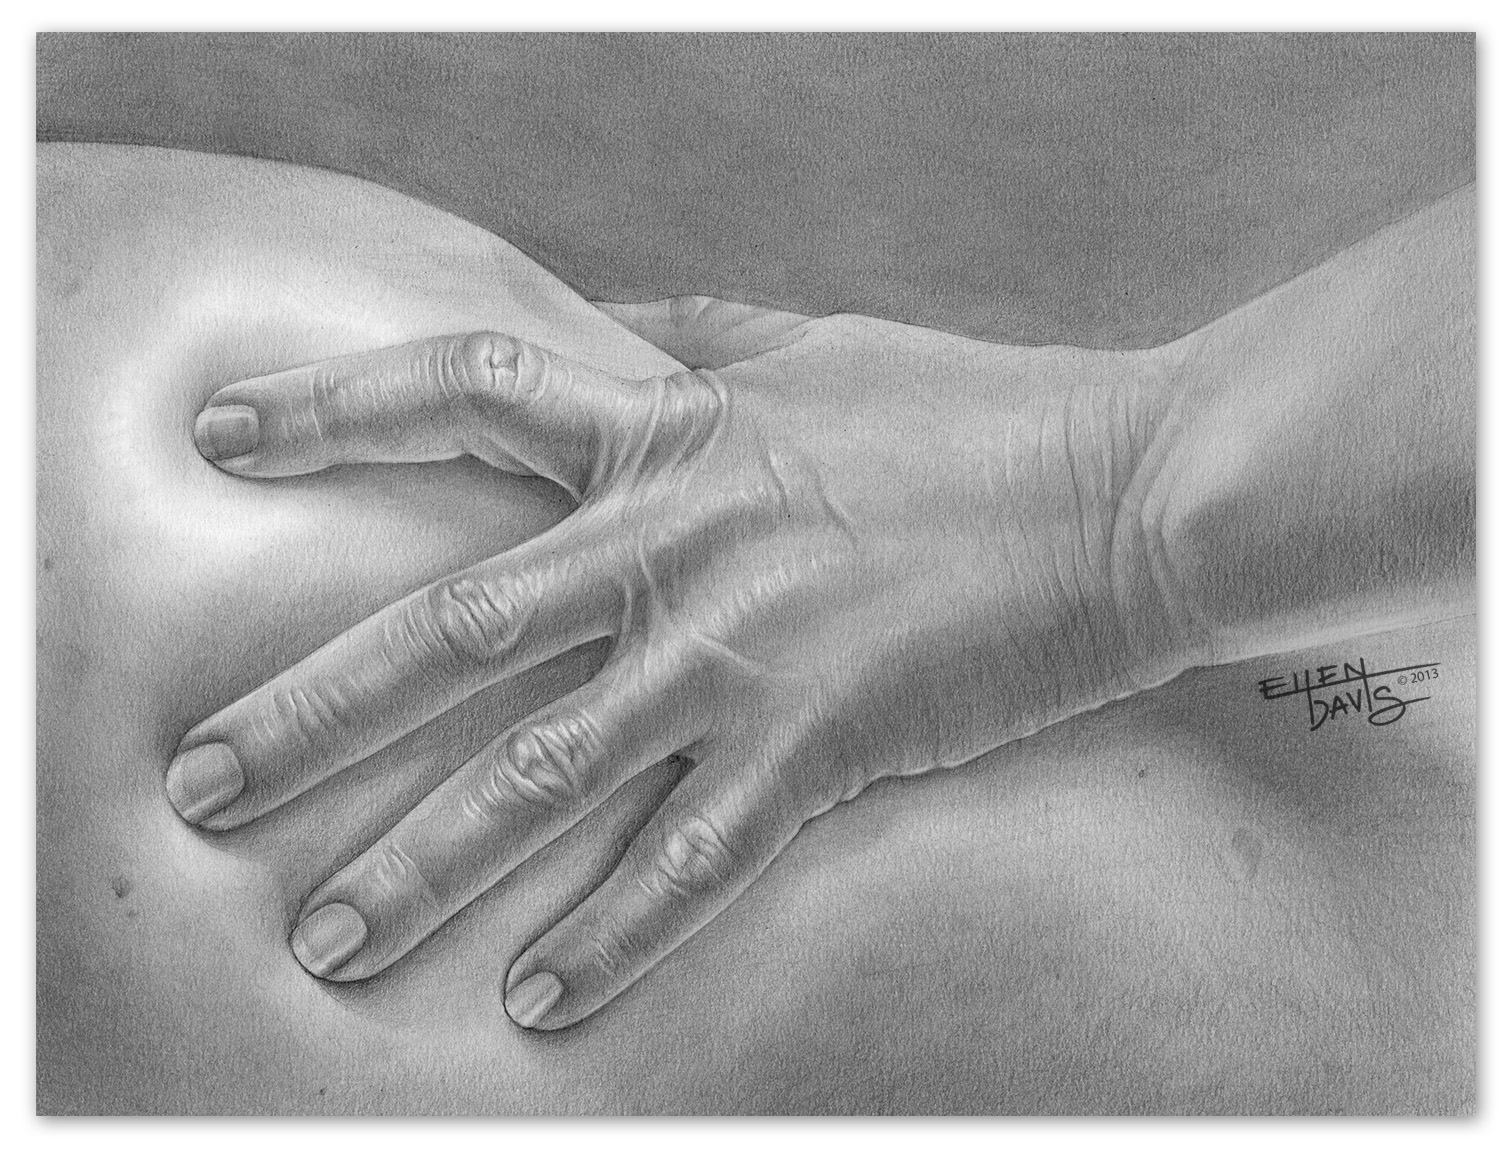 Study of a Hand   Medium:  Graphite  Objective:  To correctly depict the form and features of the human hand.  © 2013 Ellen Davis